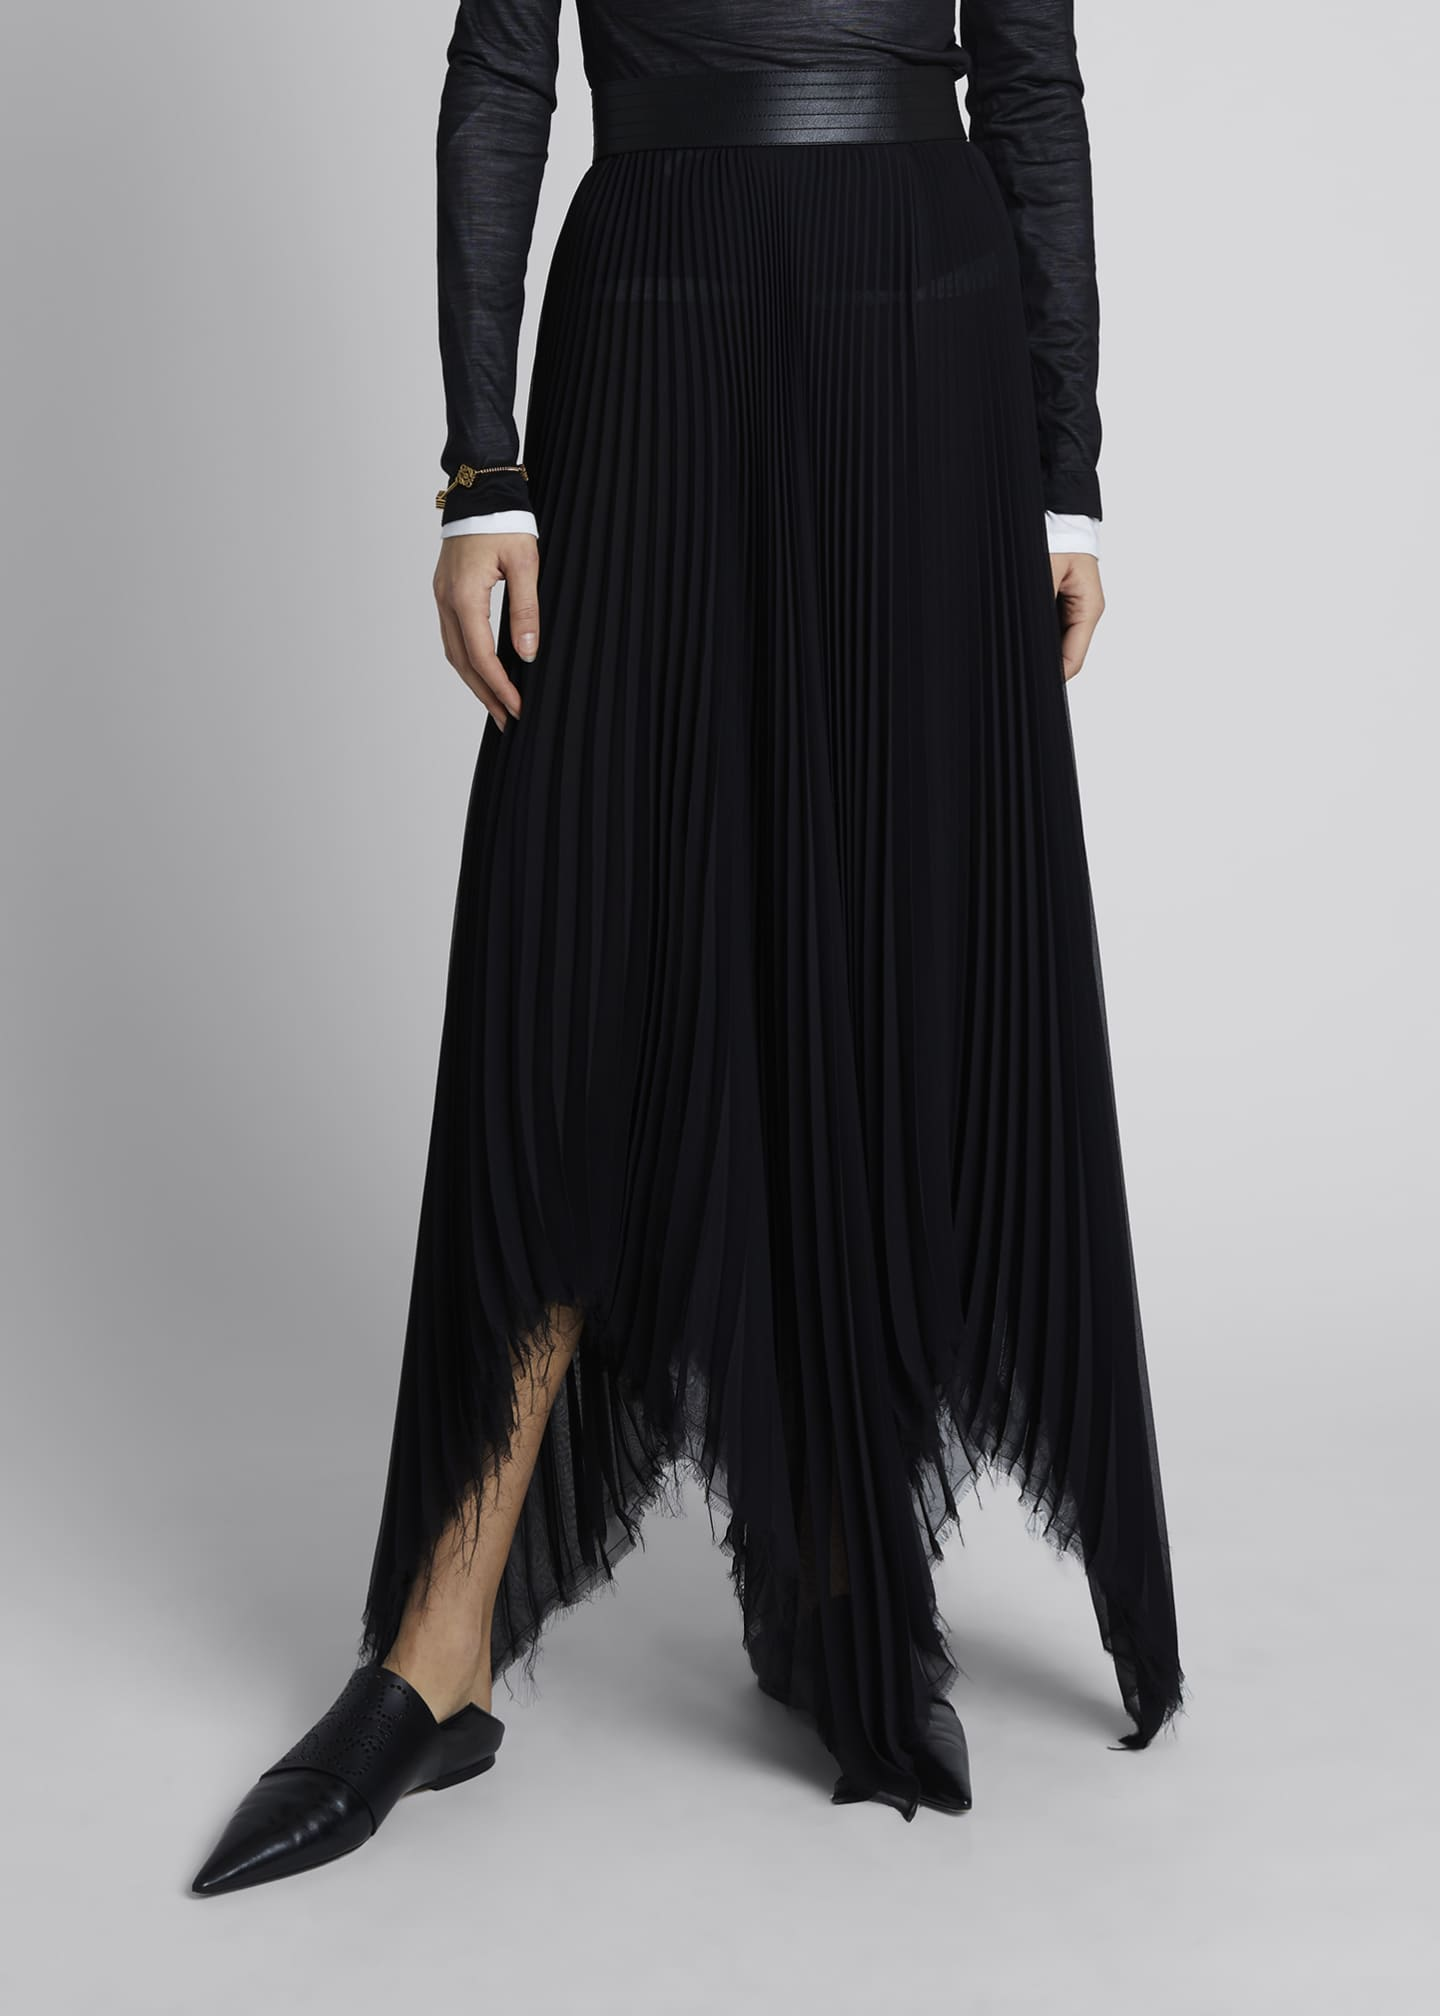 Image 3 of 4: Pleated Asymmetric Midi Skirt with Leather Trim